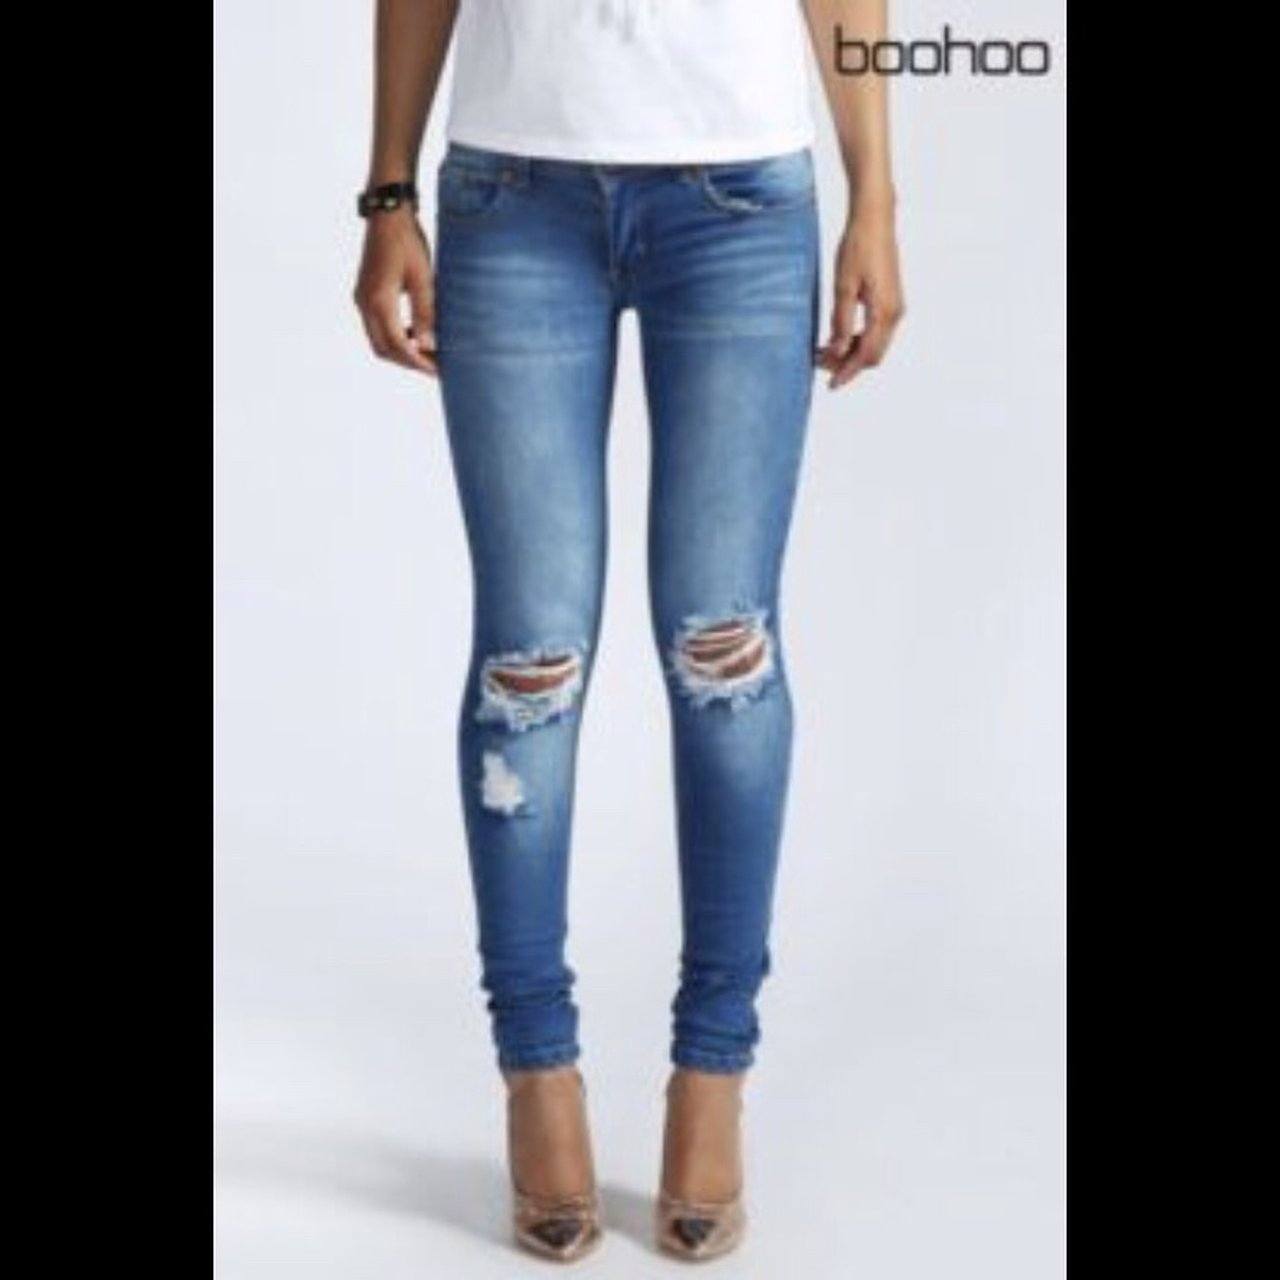 76c61e695e28 boohoo skinny ripped jeans, size 8, good condition worn a £7 - Depop